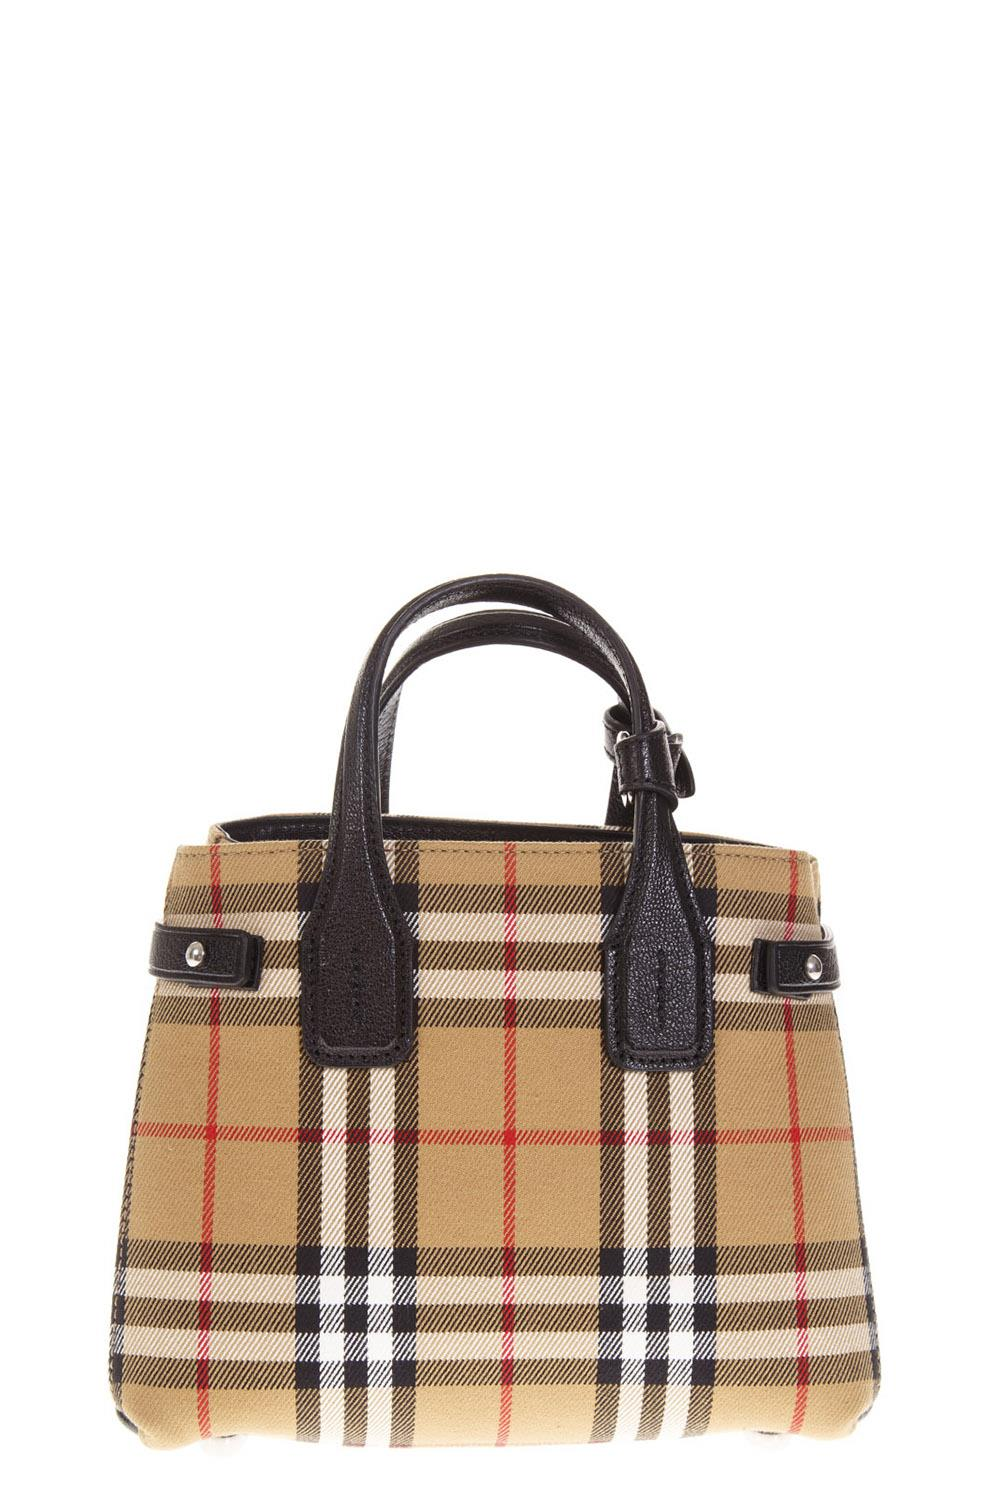 Burberry Baby Banner Canvas Shoulder Bag In Brown  dacd1587565a1